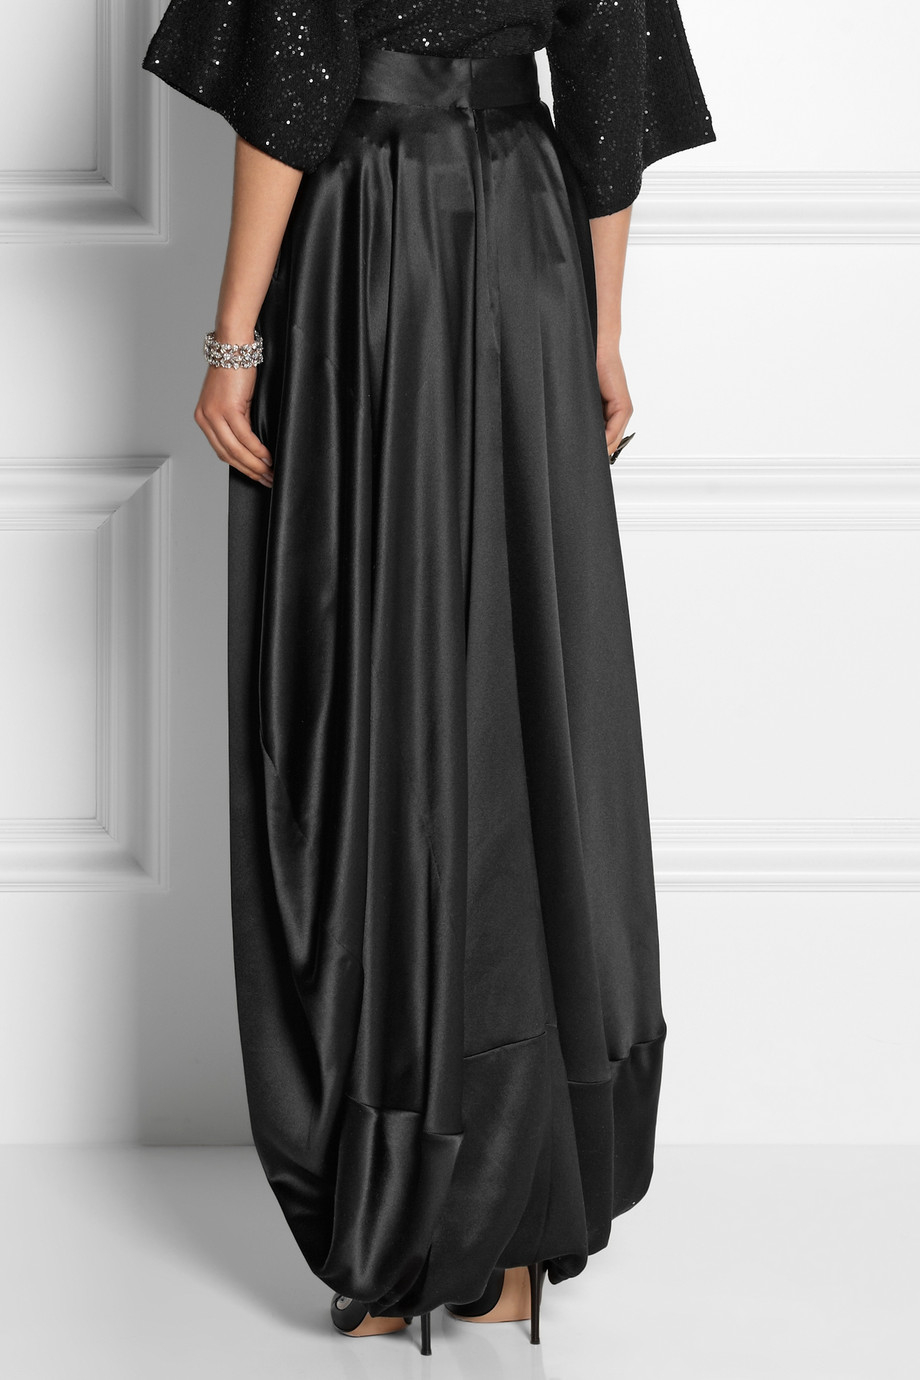 Oscar de la renta Silk-Satin Maxi Skirt in Black | Lyst